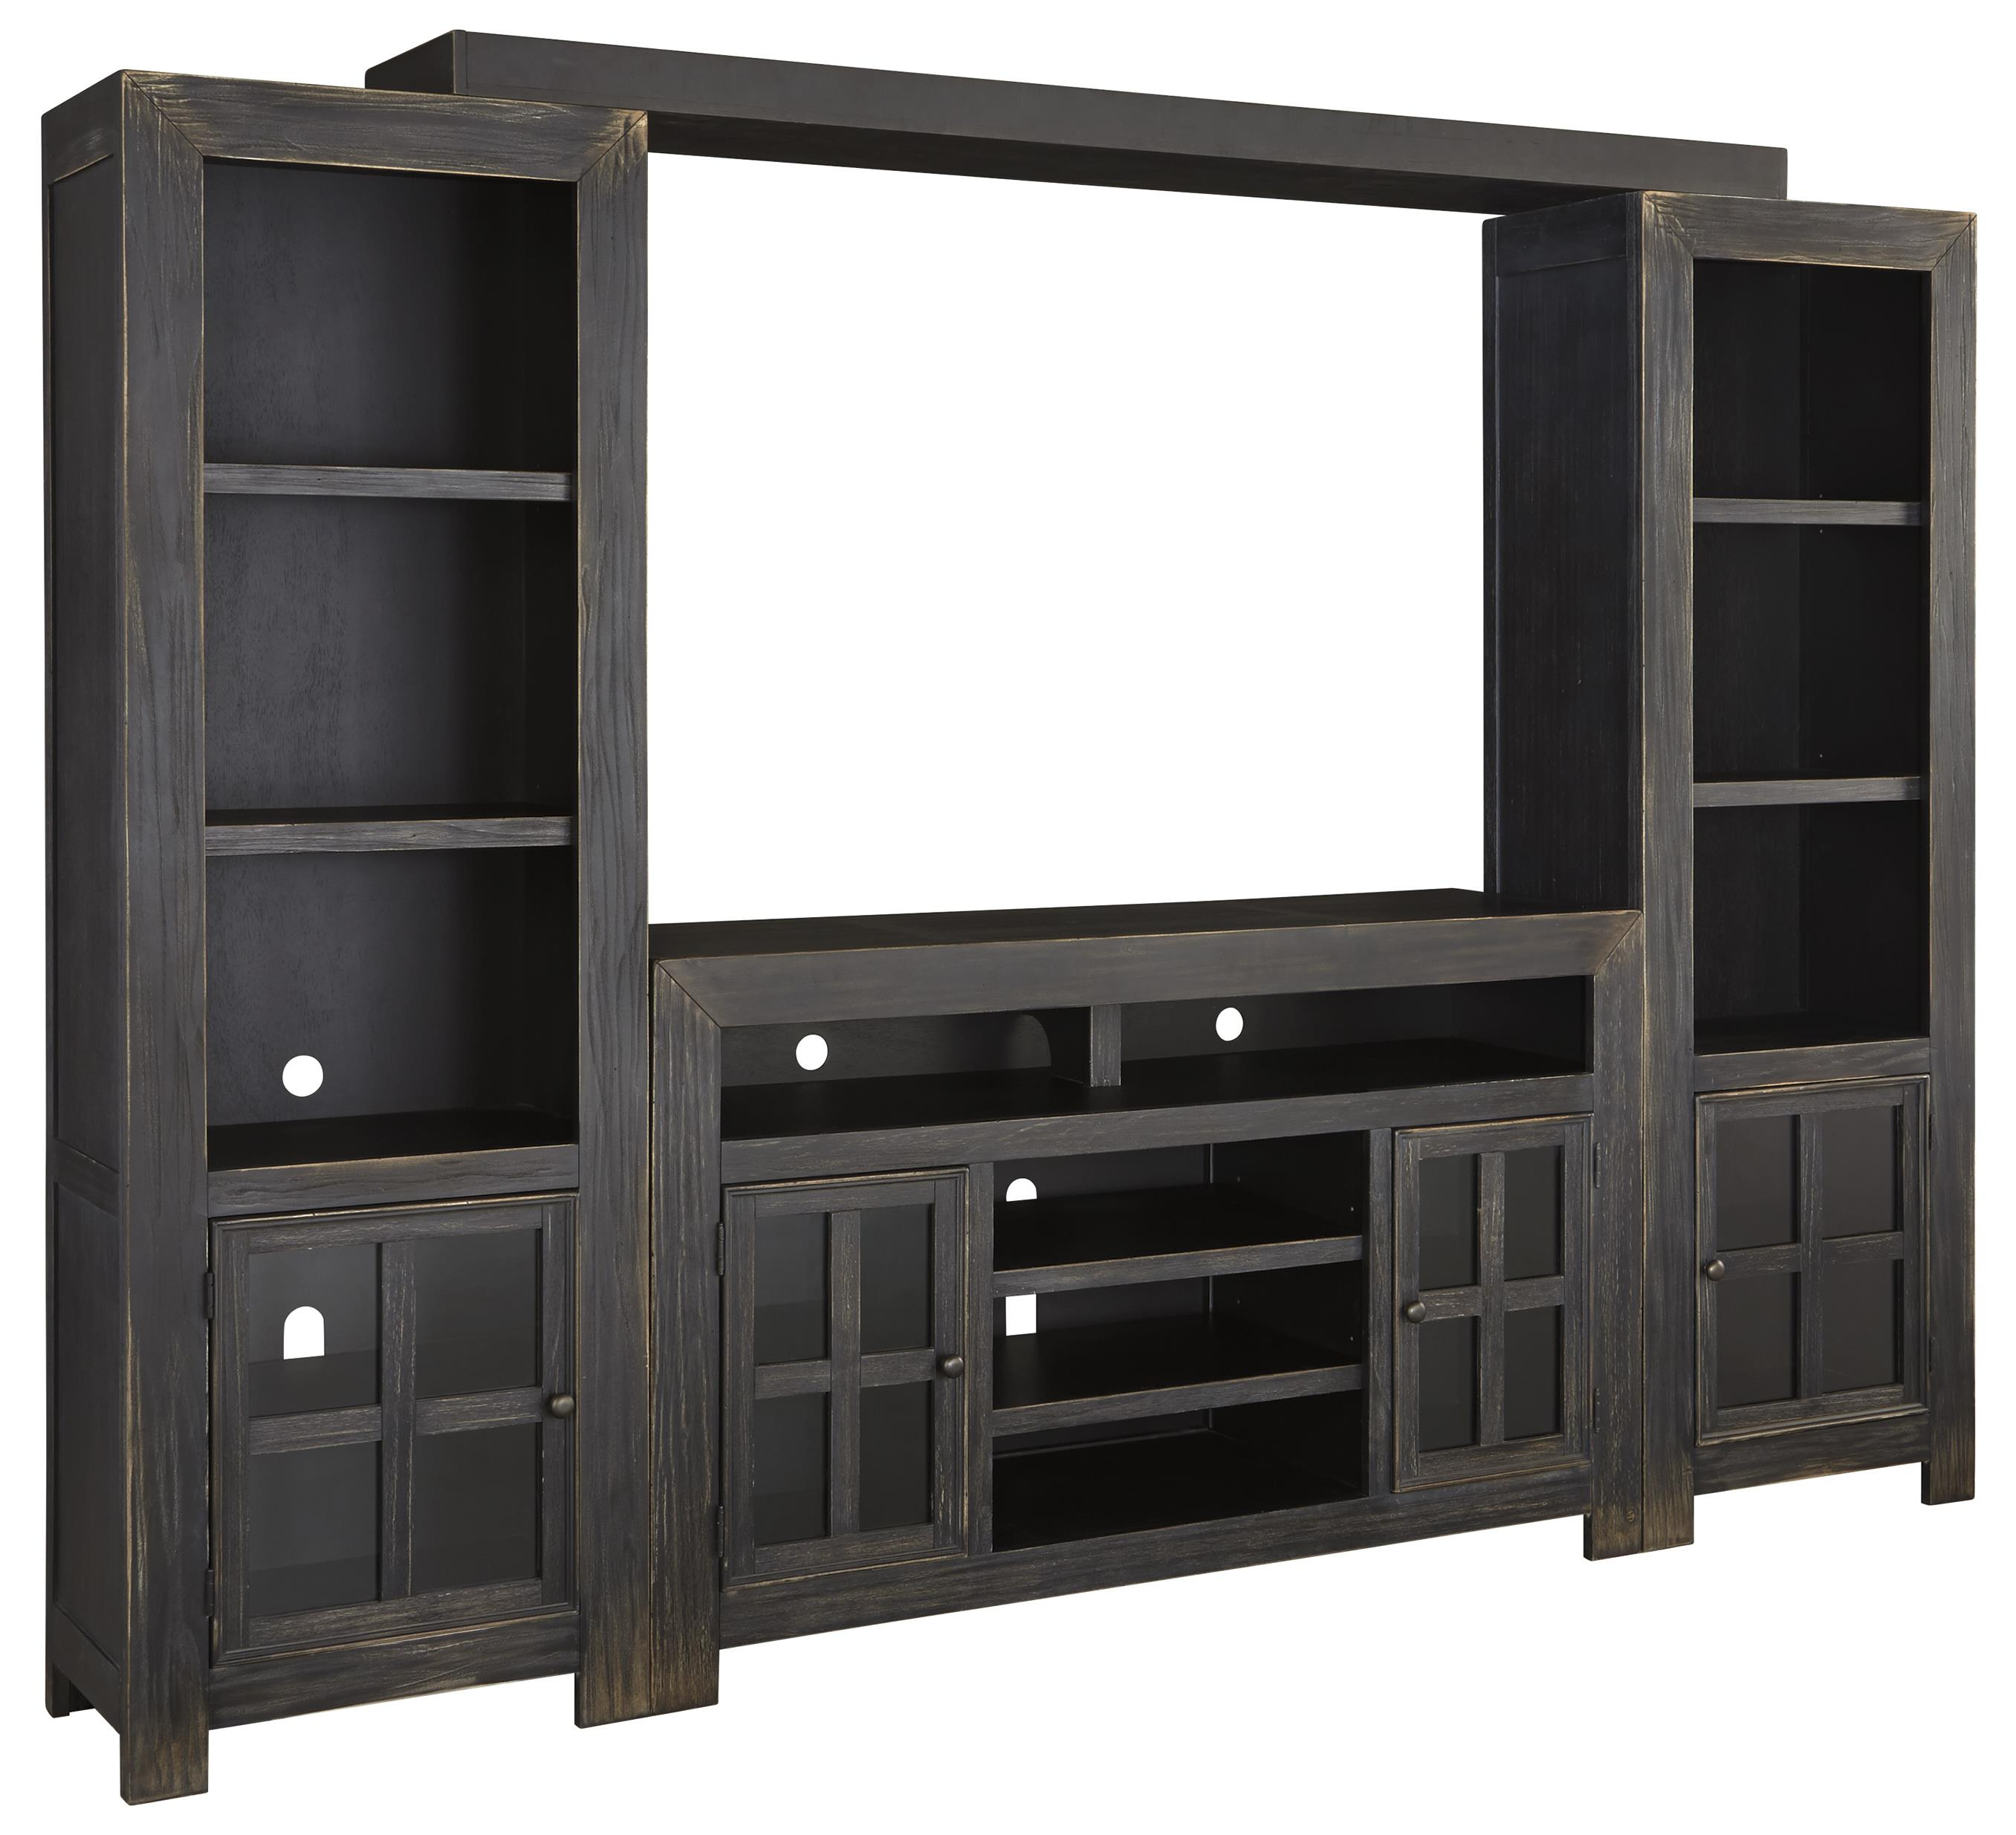 Entertainment Wall Unit W Large Tv Stand, Bridge, And. The Best Paint Color For Living Room. Red Color Living Room. Red Sofa Living Room. Paint Colors For Small Living Room. Coffee Tables For Narrow Living Rooms. Living Room Furniture Bobs. Furniture For Small Living Room. Decoration Designs For Living Rooms